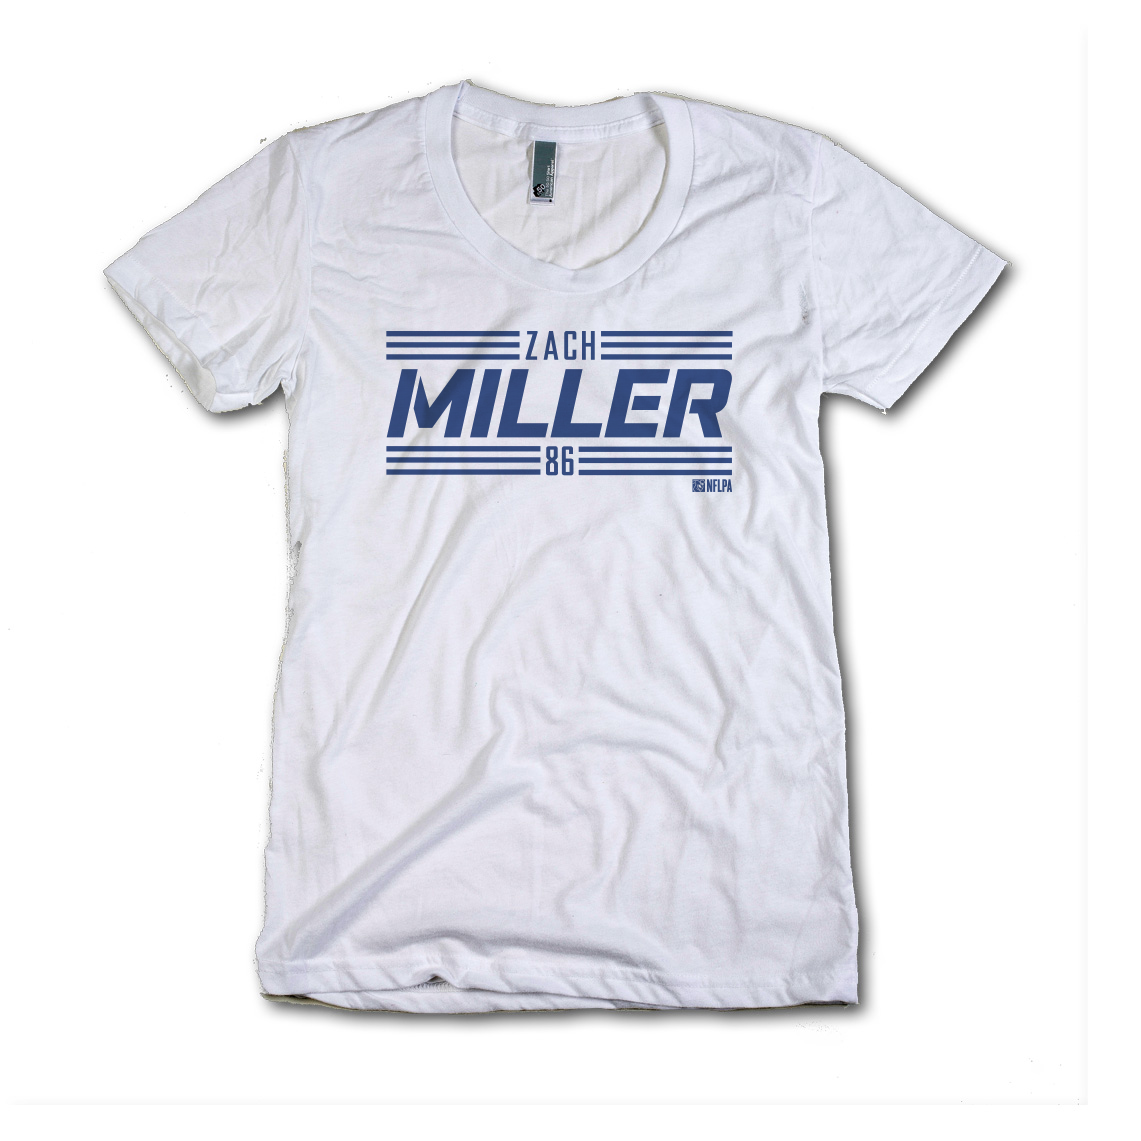 YOUTH Chicago Bears Zach Miller Jerseys